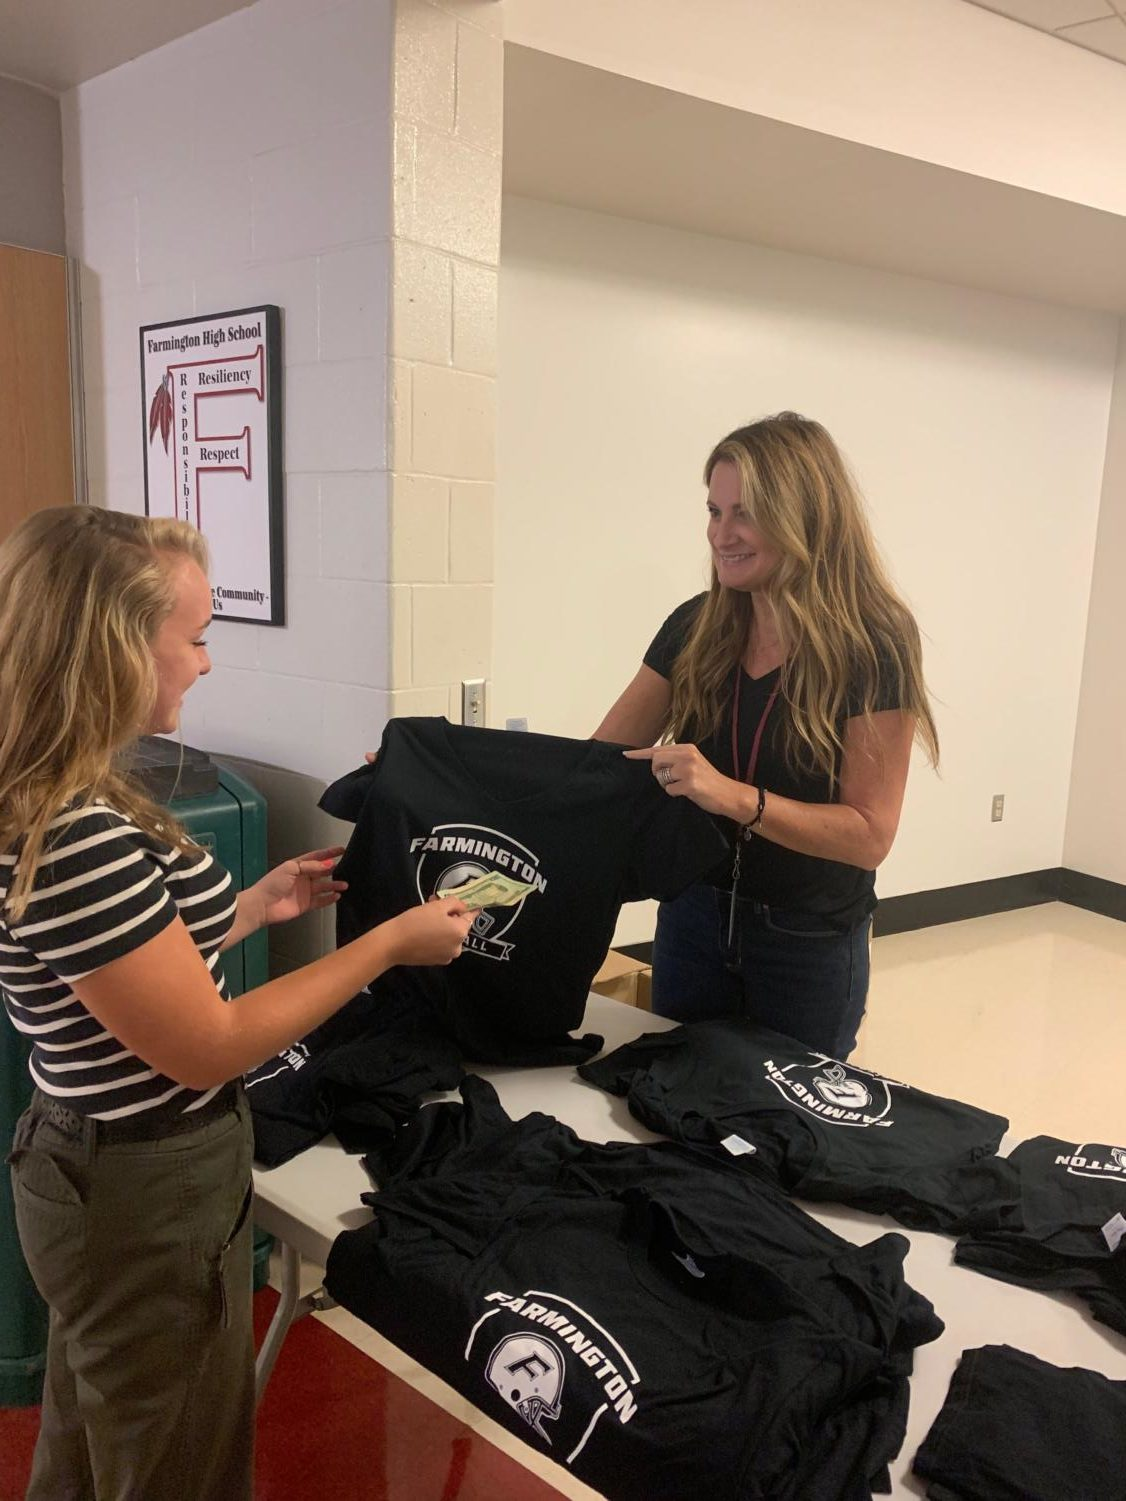 Get them while they're hot -- Sophomore Lily Taylor purchases a Blackout t-shirt from Trish Guglielmo, mother of senior captain Mitch Guglielmo. All students are encouraged to wear black to the game on Friday, October 4 against Wethersfield.